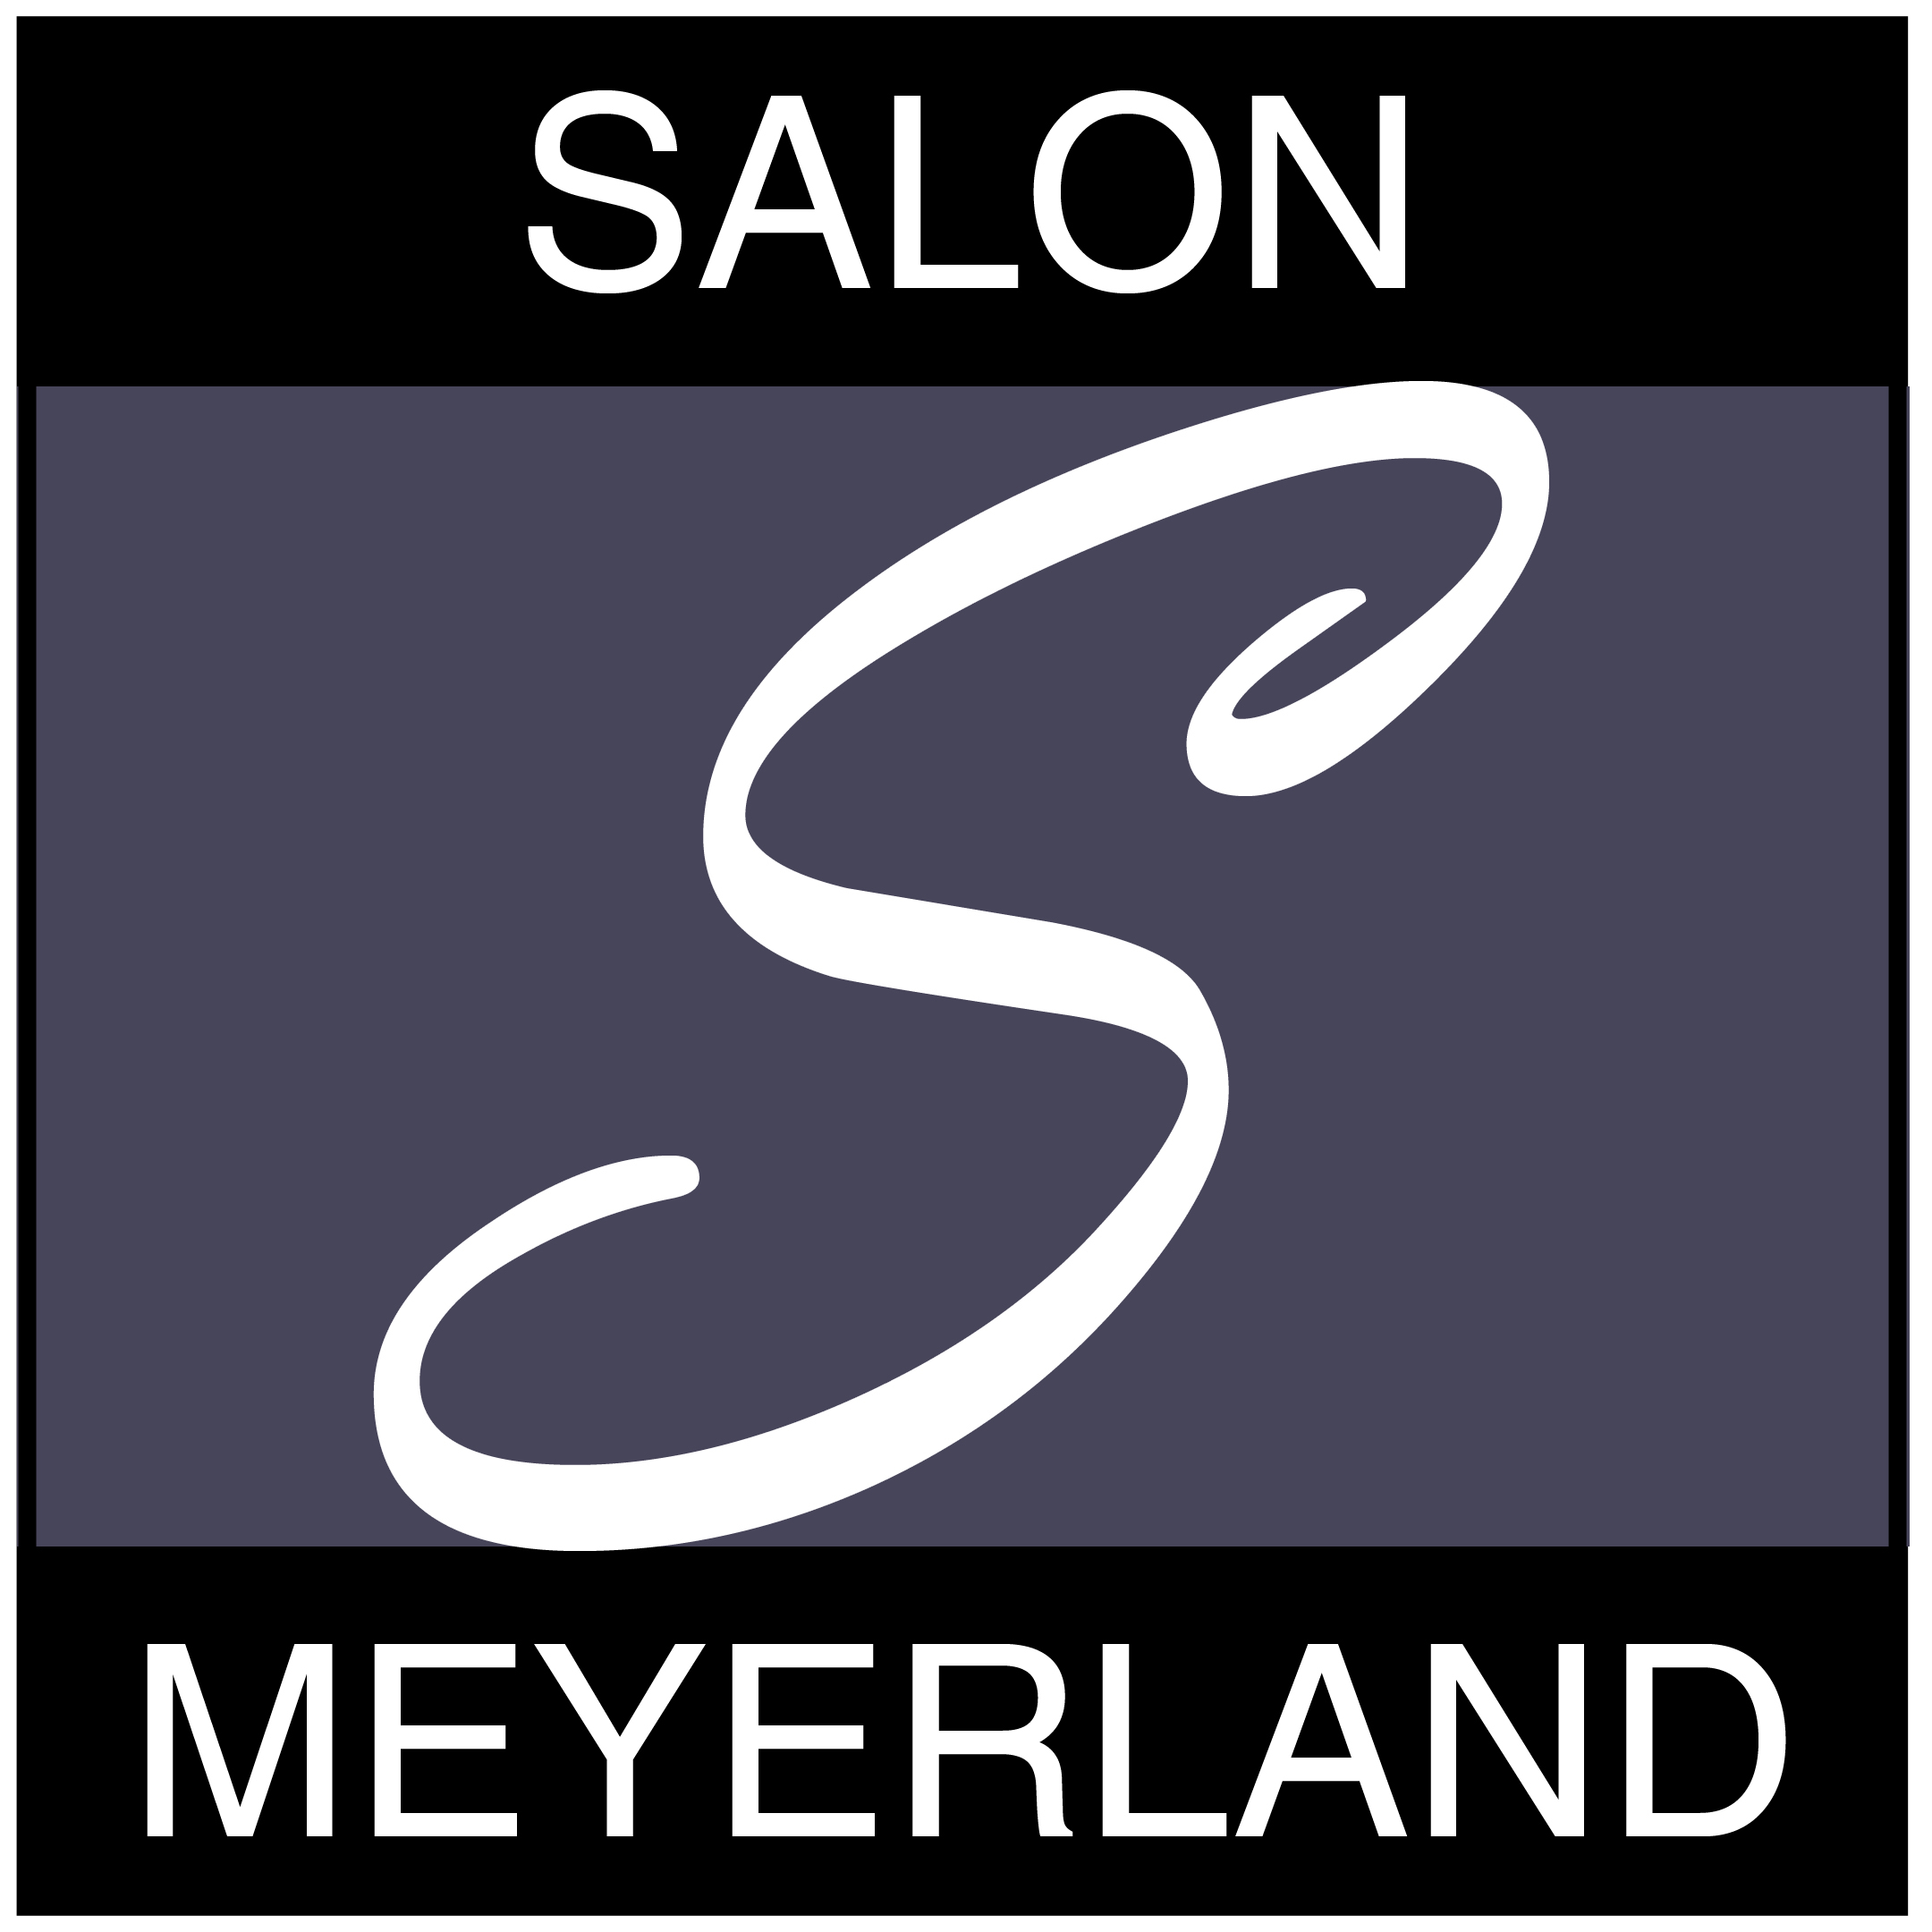 Salon Meyerland - #1 Relaxed and Natural Black Hair in Houston